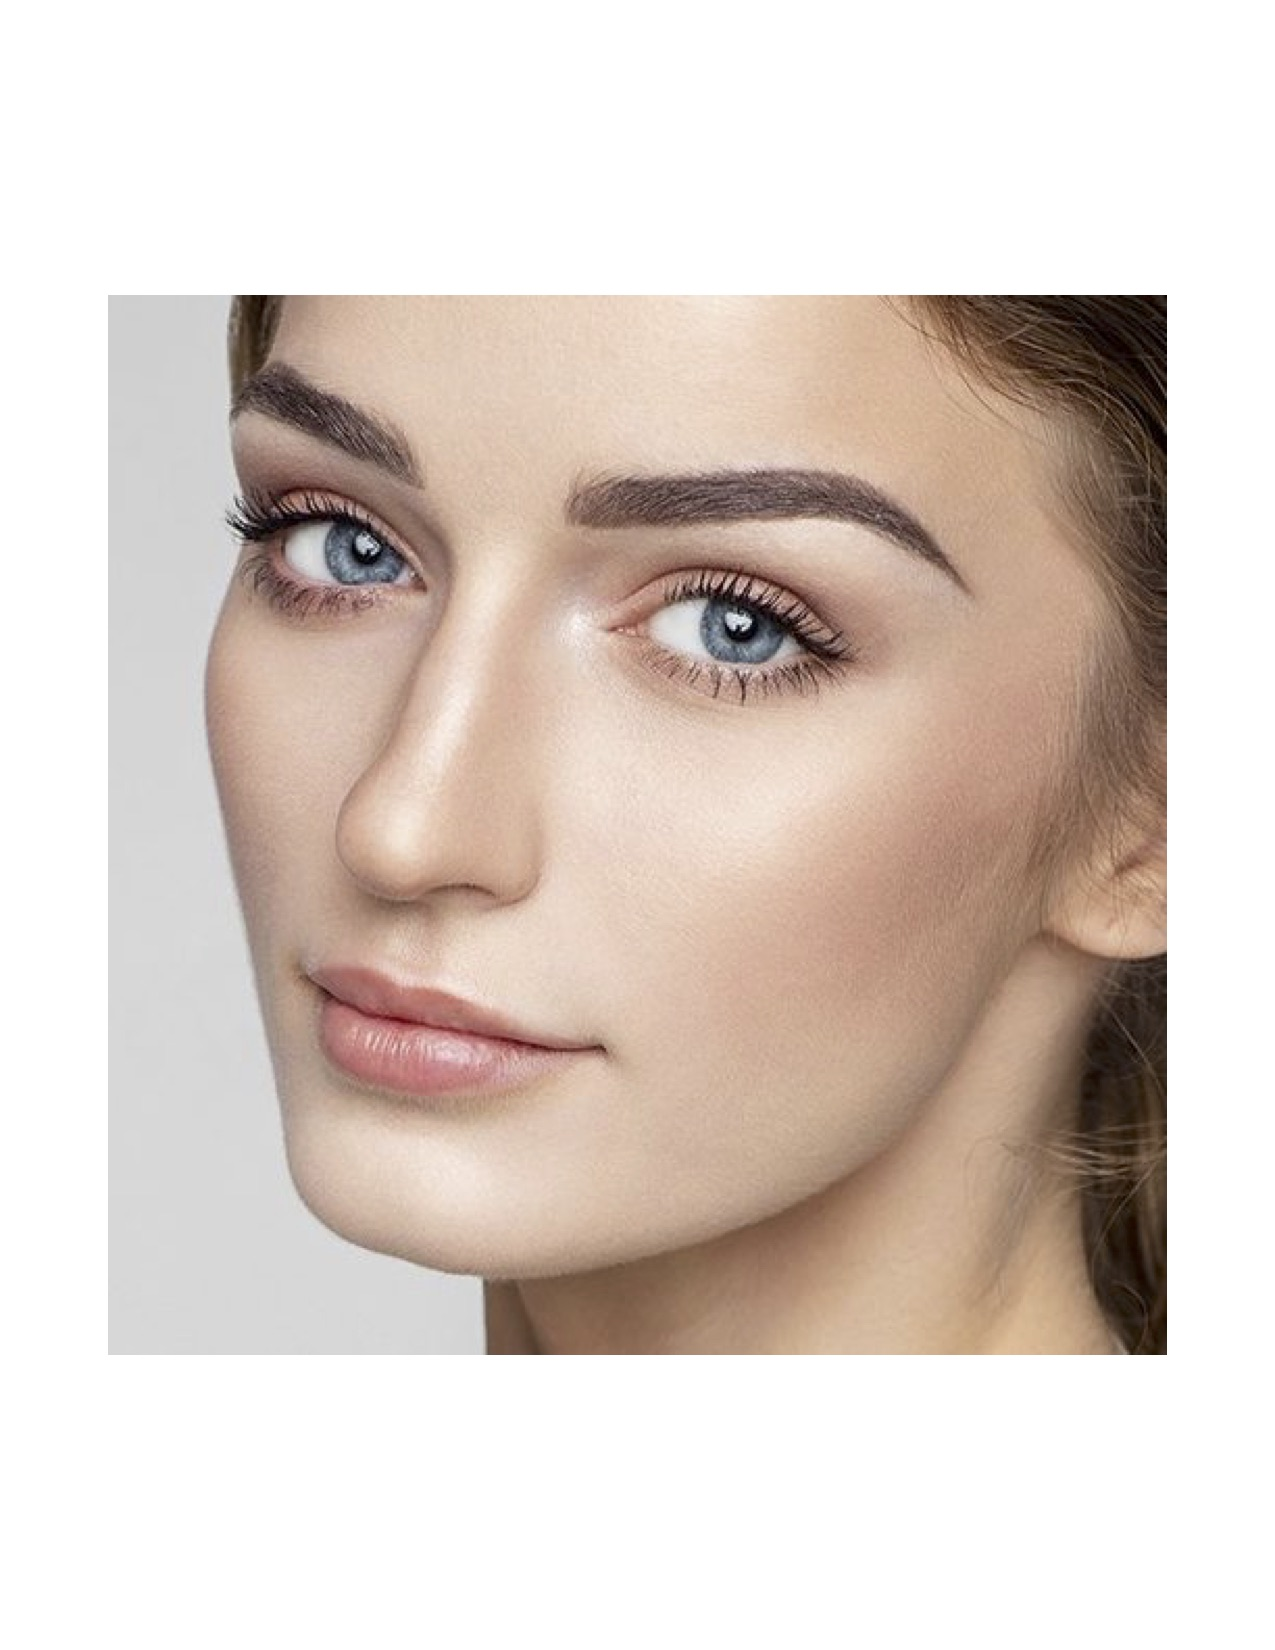 Microblading - 5 Days This five-day Microblading workshop at Neihule Academy of Beauty will teach you the fundamentals of Microblading and Microshading.LEARN MORE